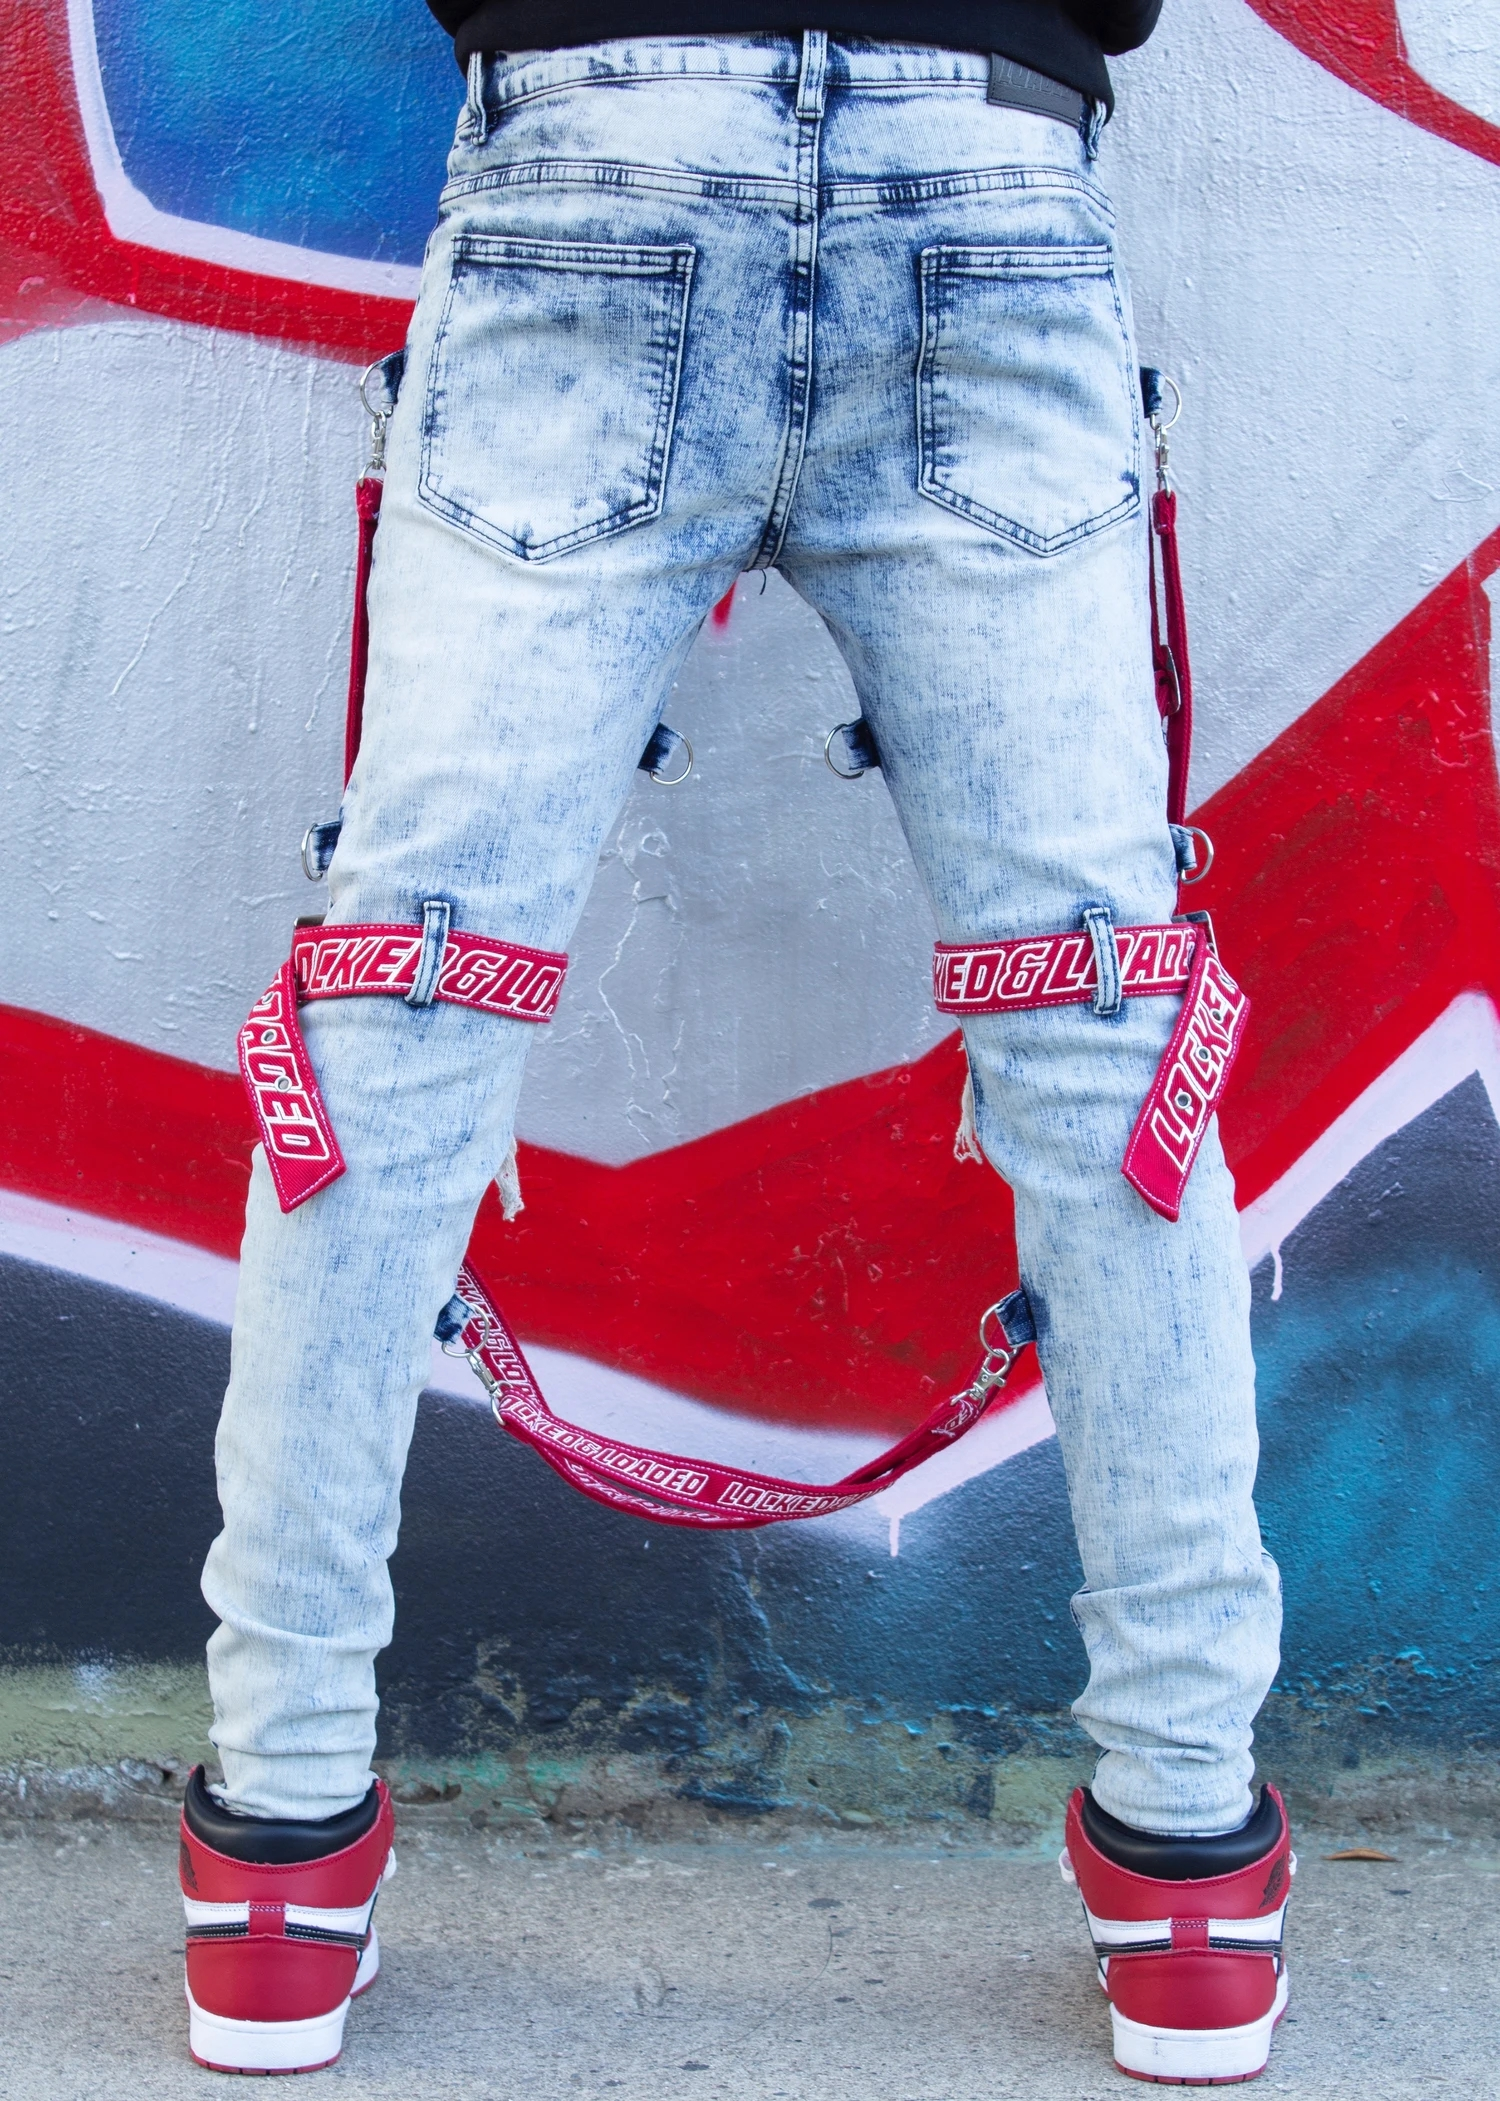 🔥Buy 2 Free Shipping🔥Locked and Loaded Jeans-Belt and Stone-Light Blue and Red